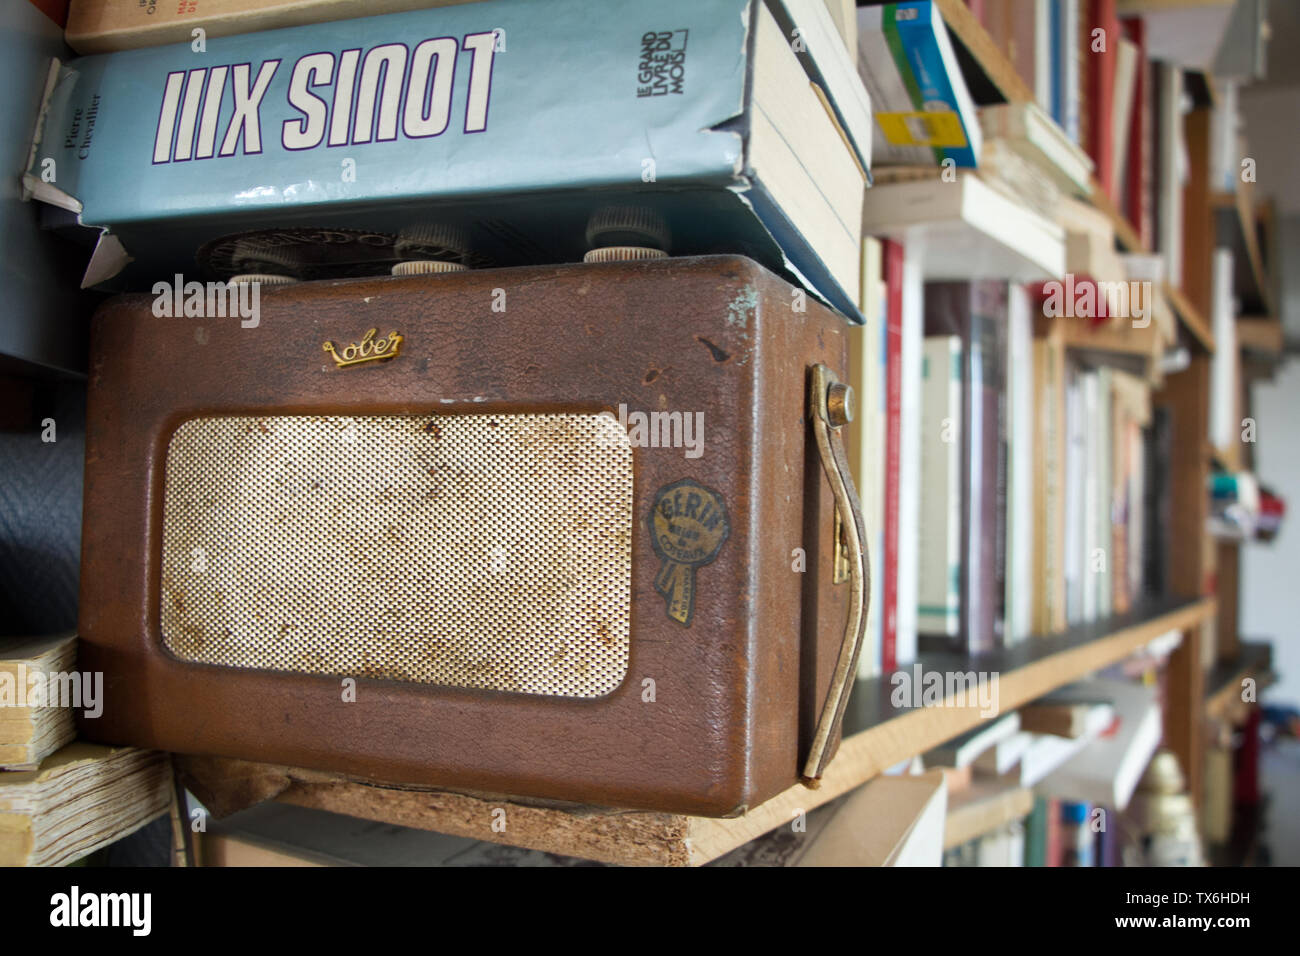 Paris, France - July 05, 2018: Closeup of a shelf with books and an old radio in a small apartment in the suburbs of Paris - Stock Image